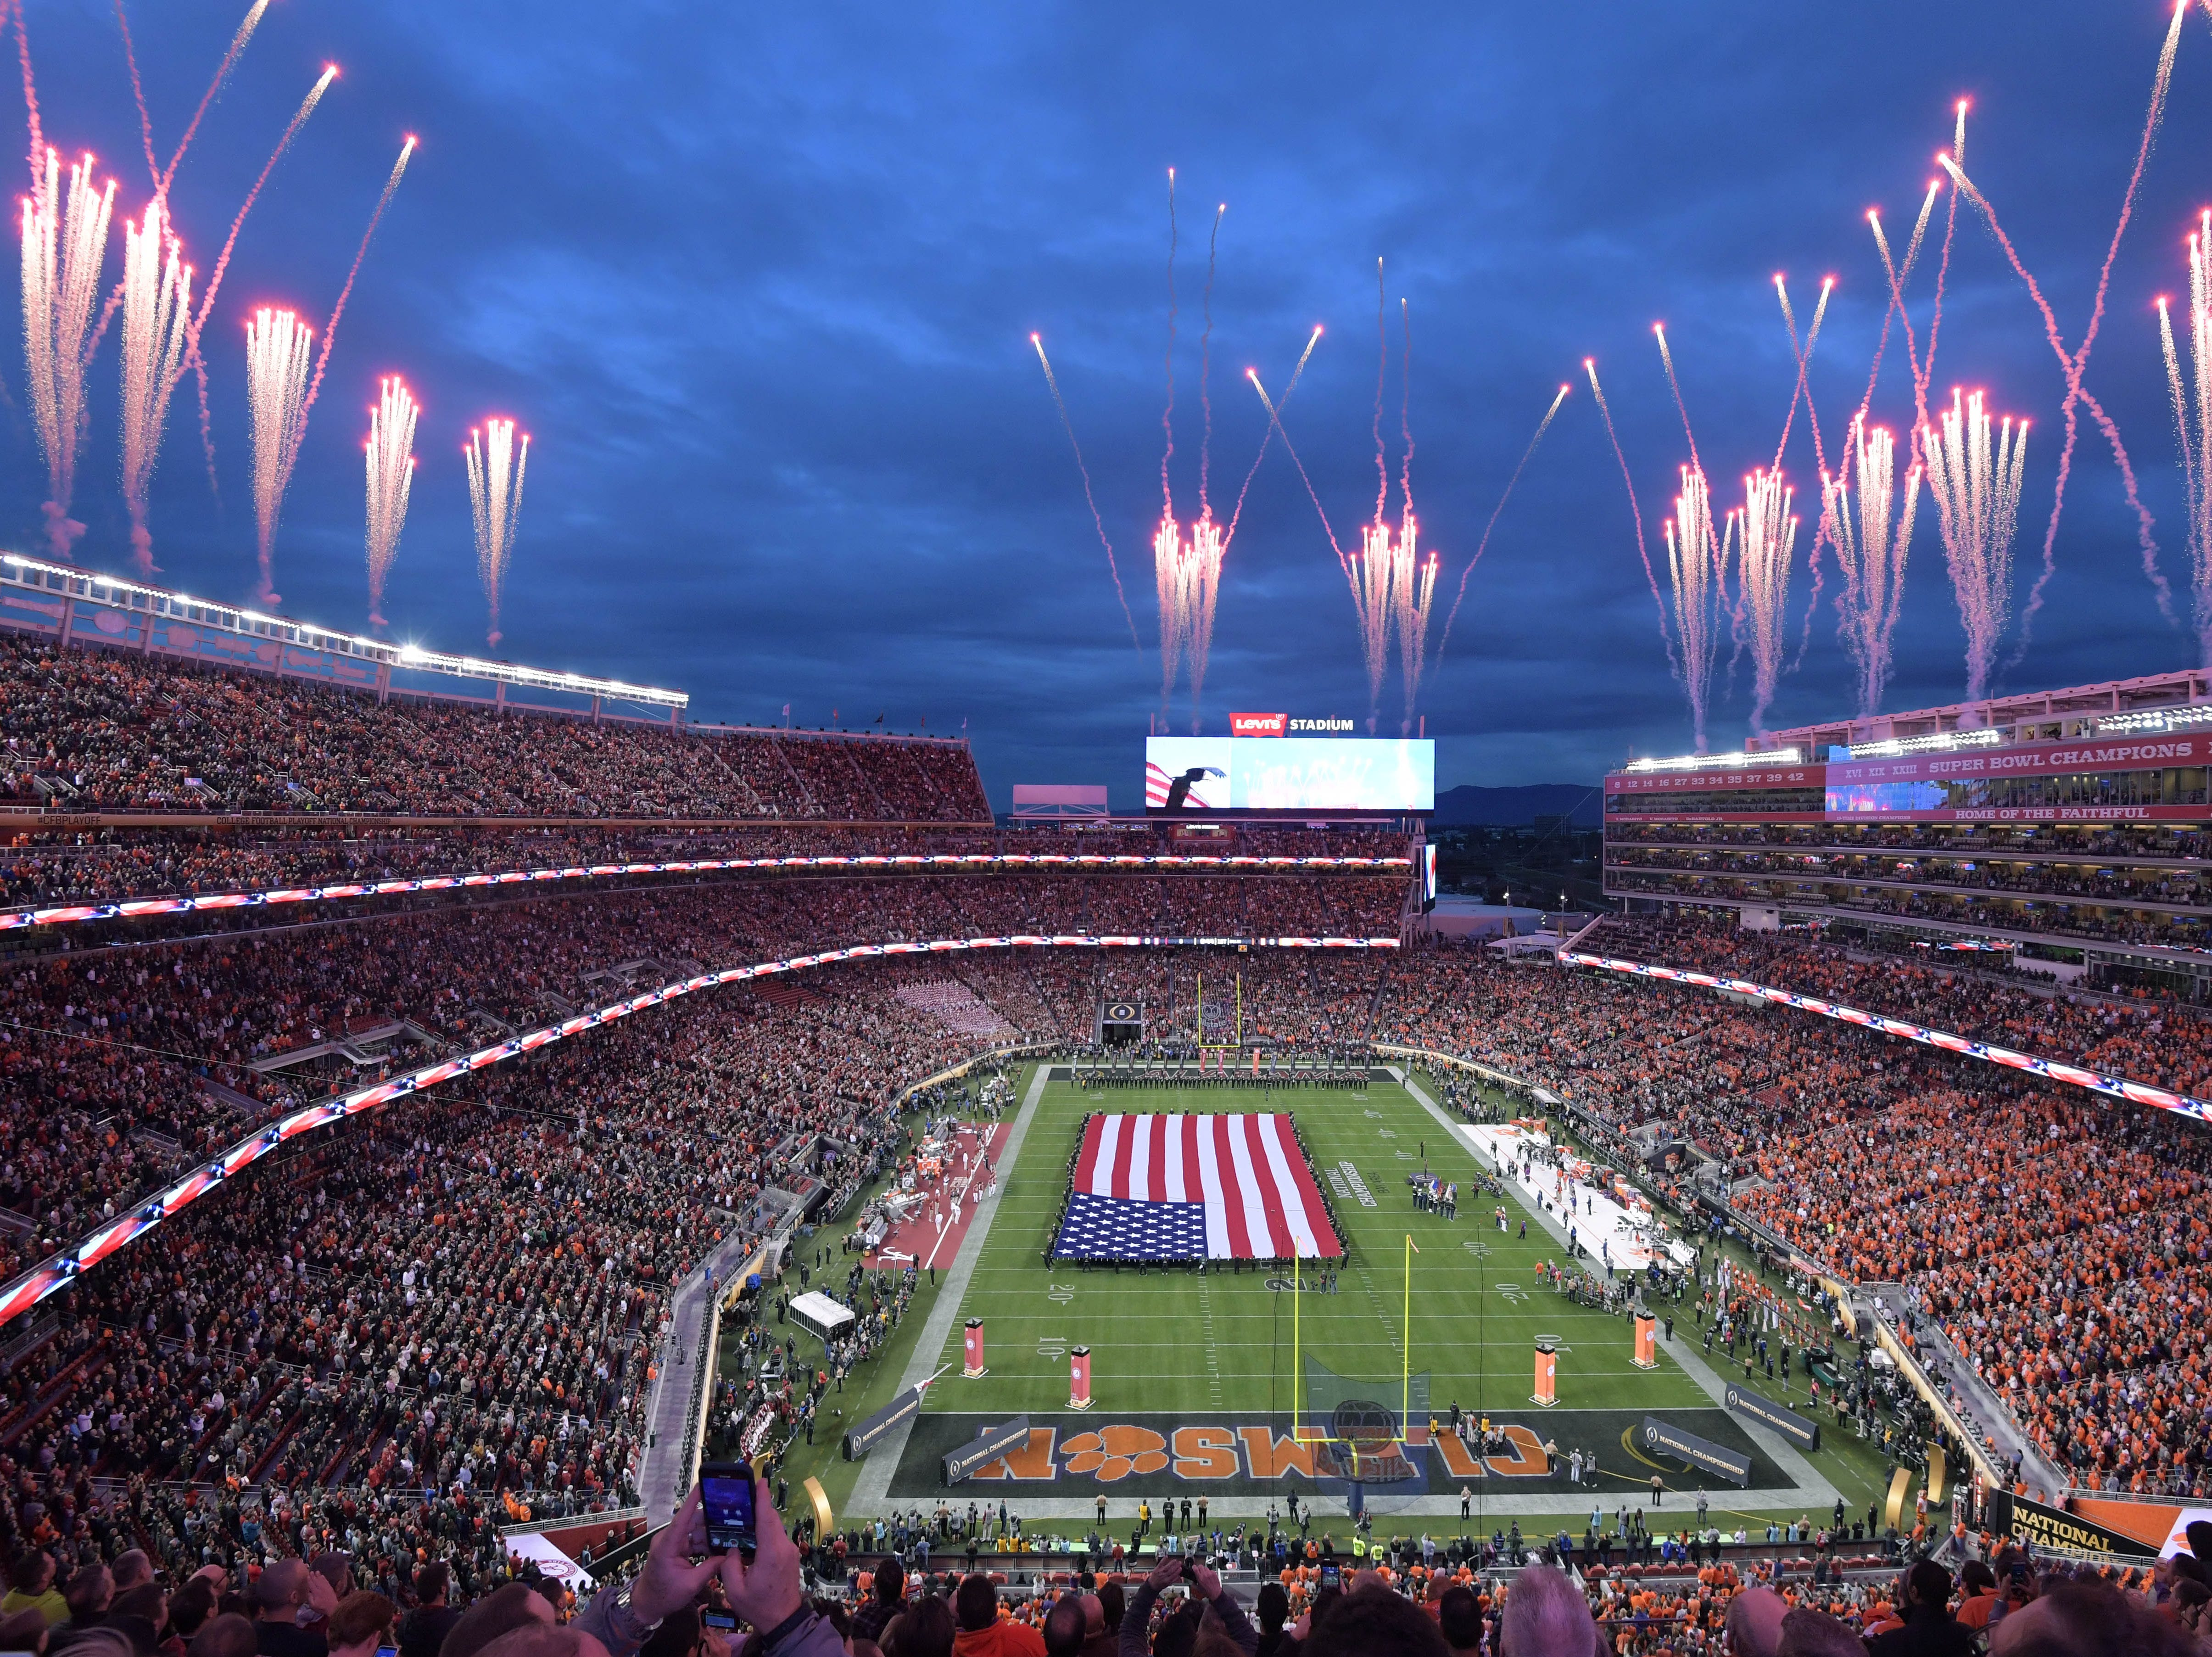 A view of the stadium during the national anthem before the game.